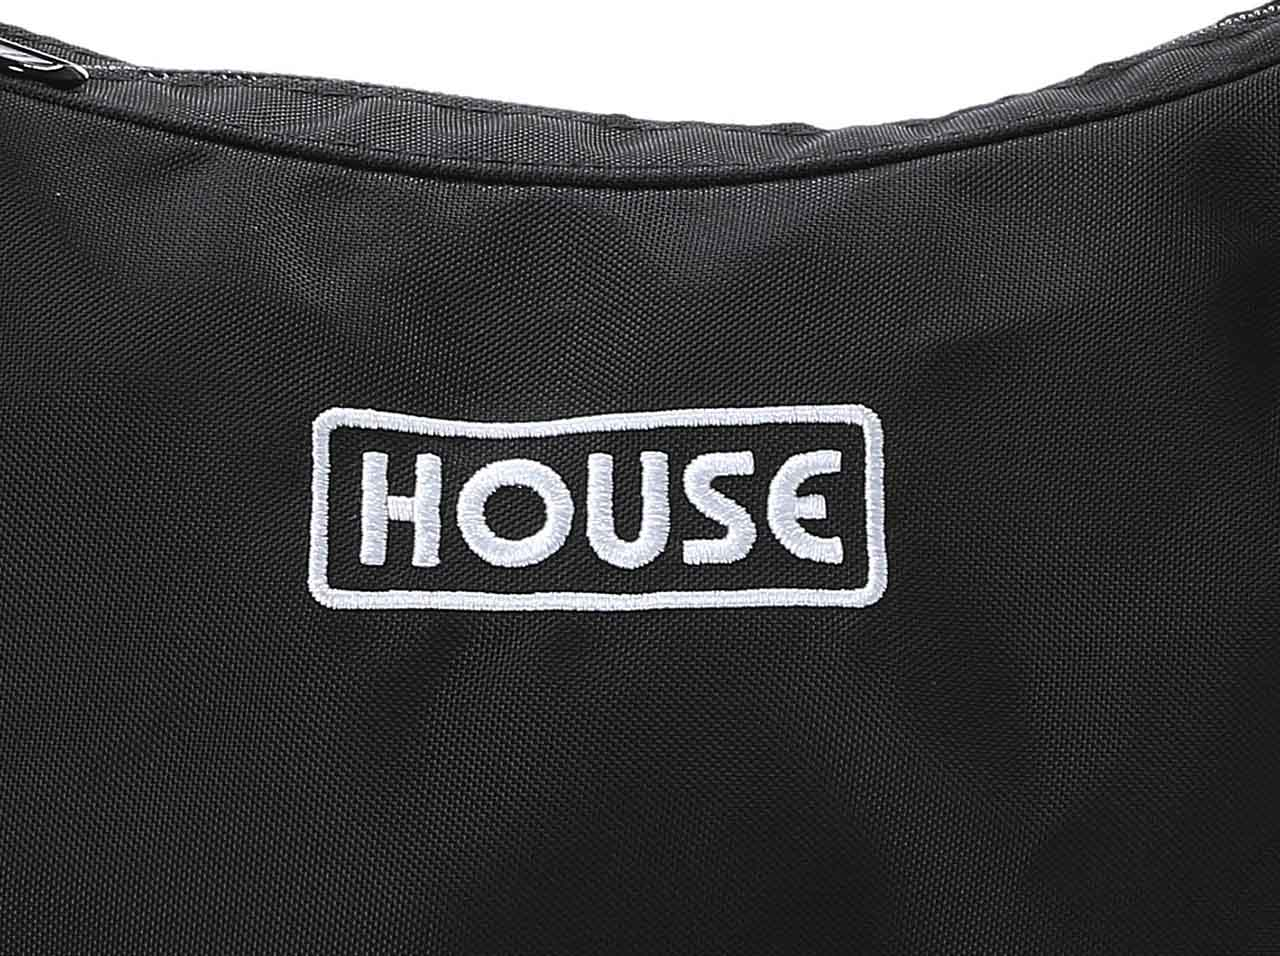 【60%OFF】IN THE HOUSE ROUND SHOULDER BAG SMALL 2 - ith-0060